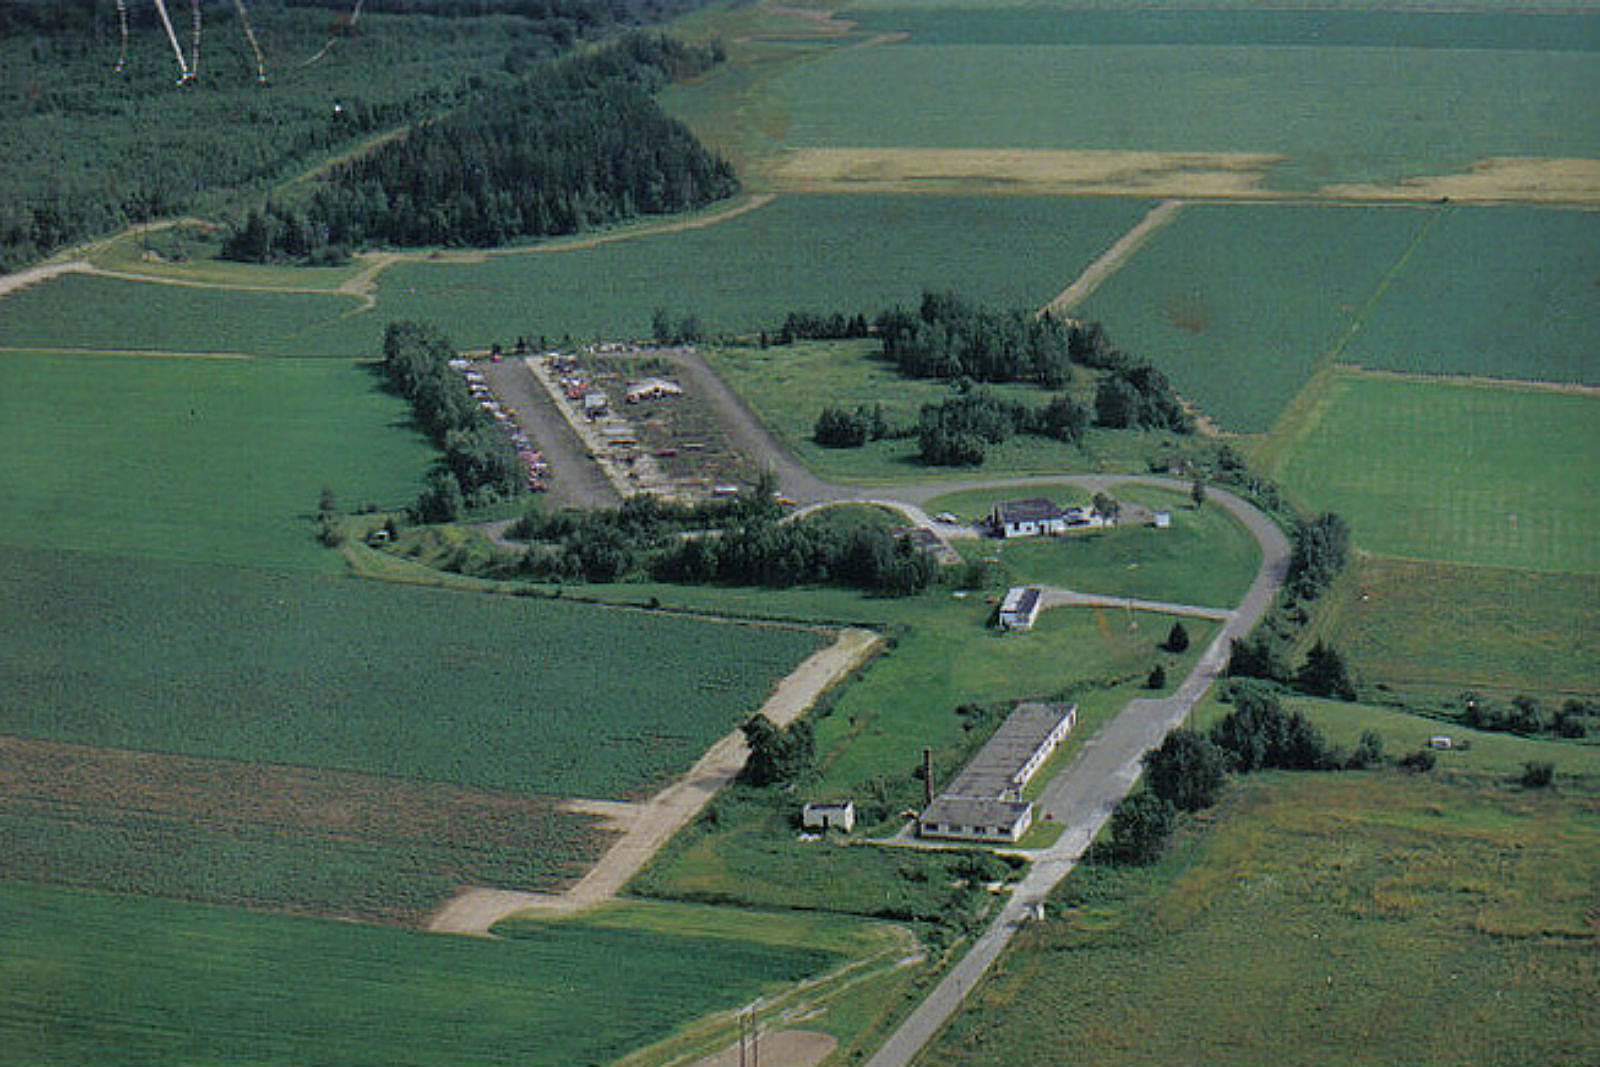 Decommissioned Missile Base Properties For Sale A Missile Base Complete With Underground Bunkers Is For Sale In